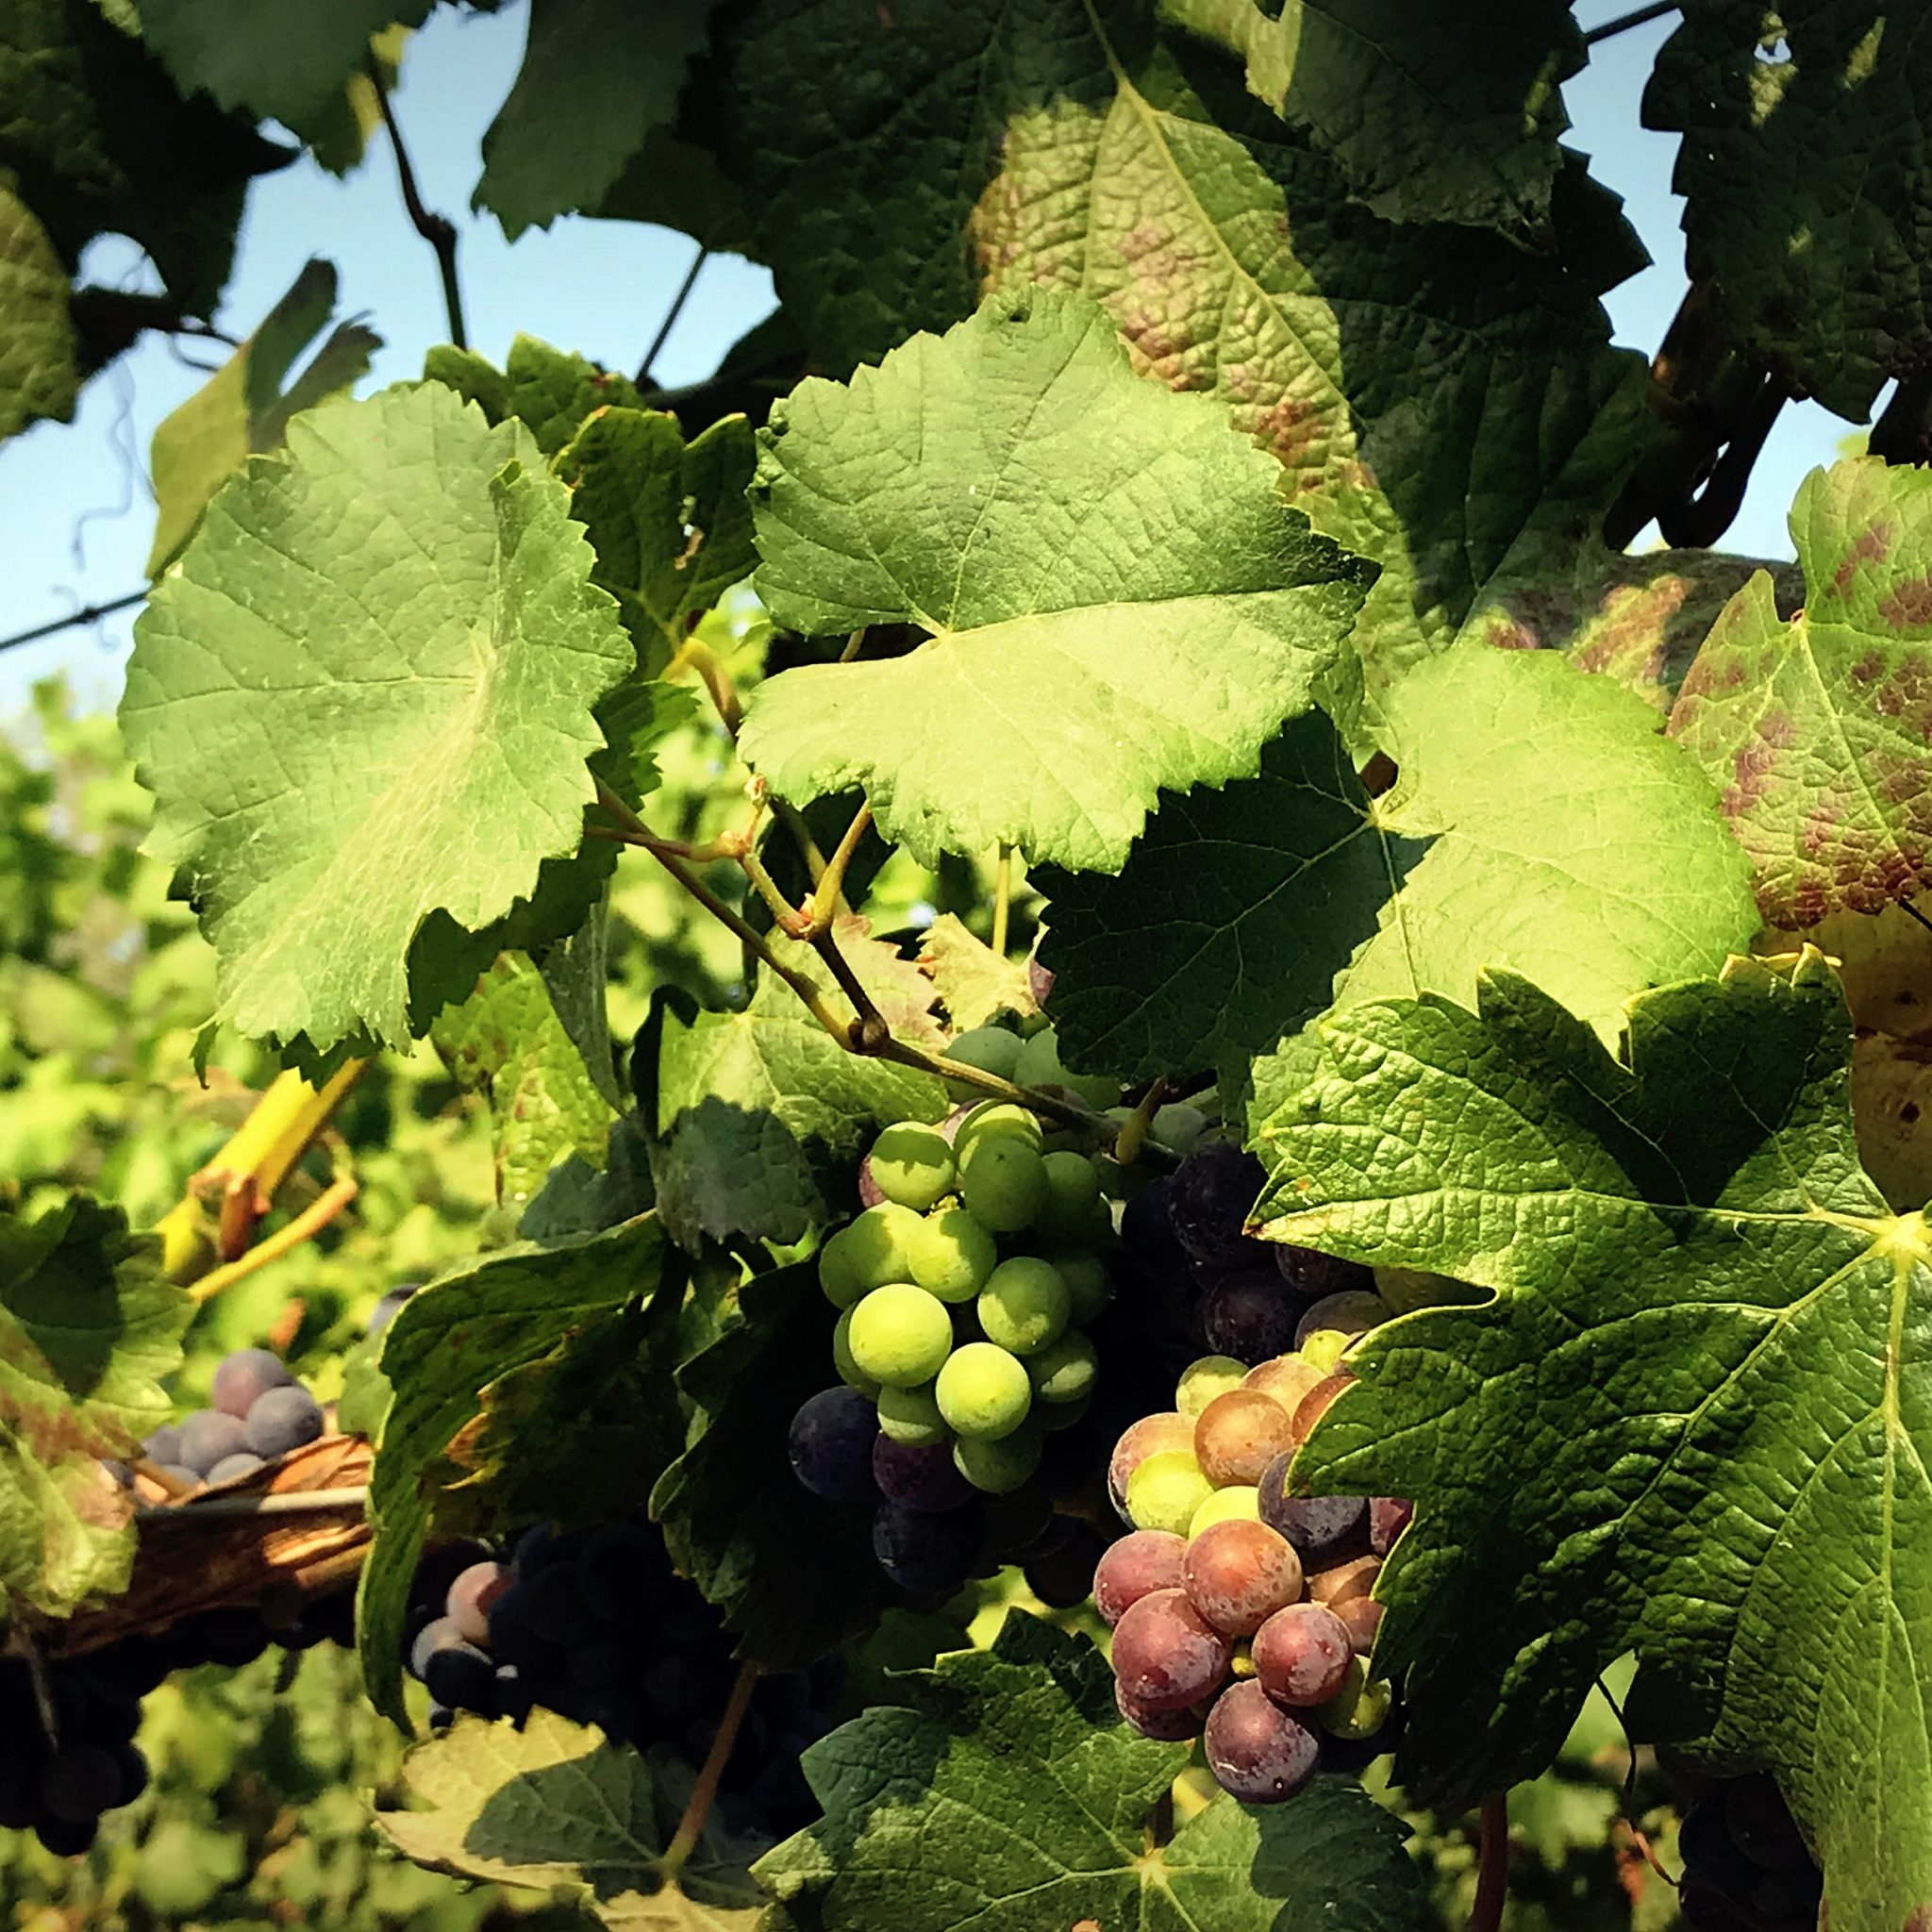 Oregon has established itself as a producer of world class Pinot Noir.